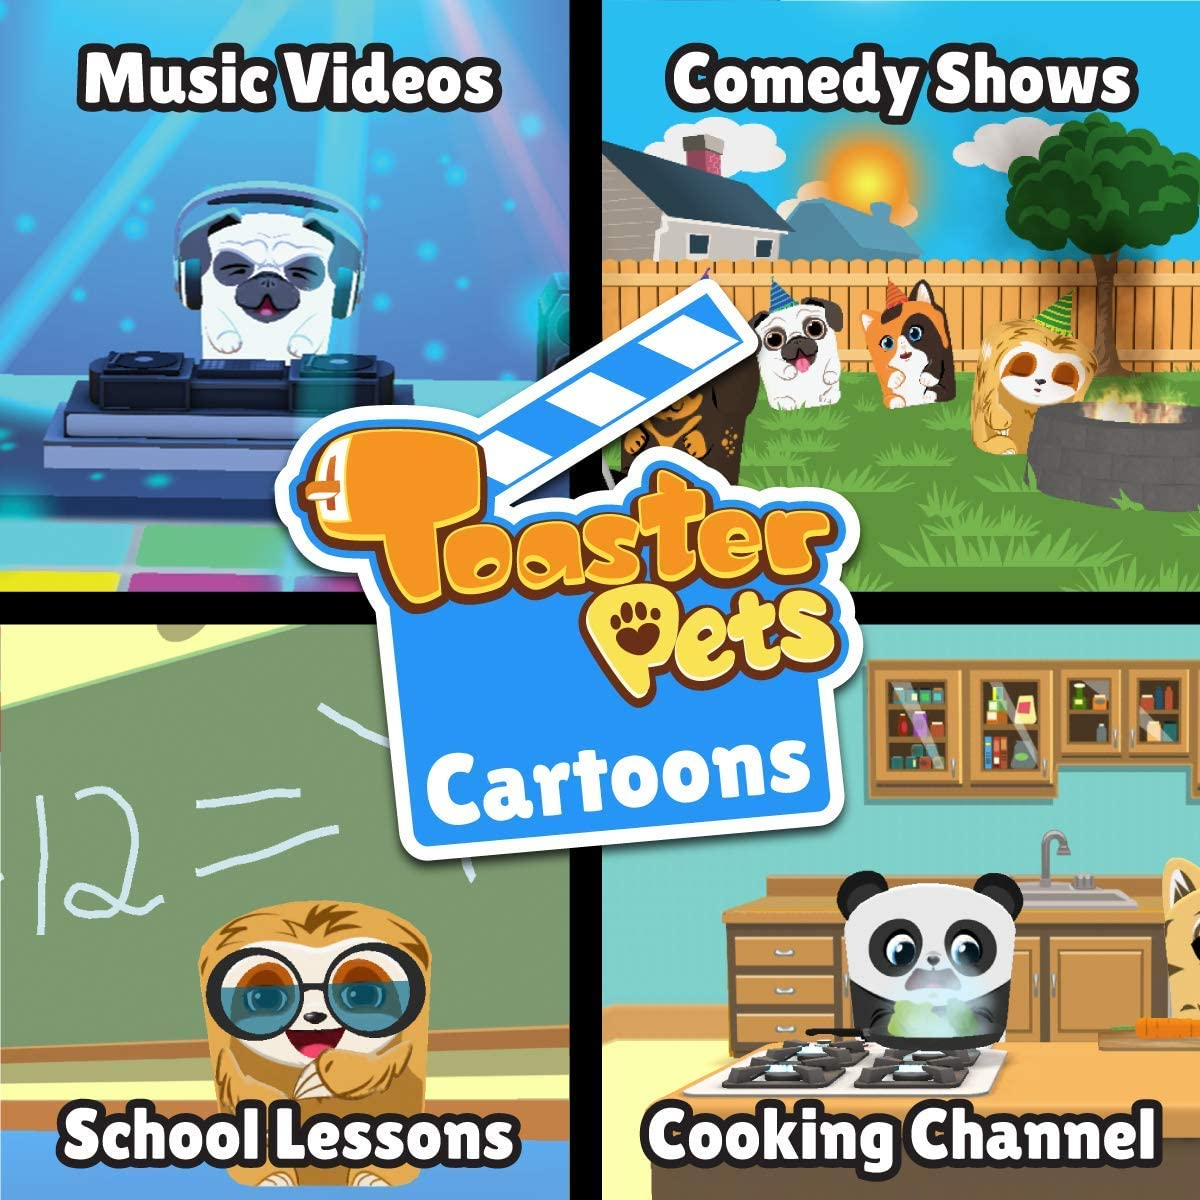 Toaster Pets Cartoons Studio kit